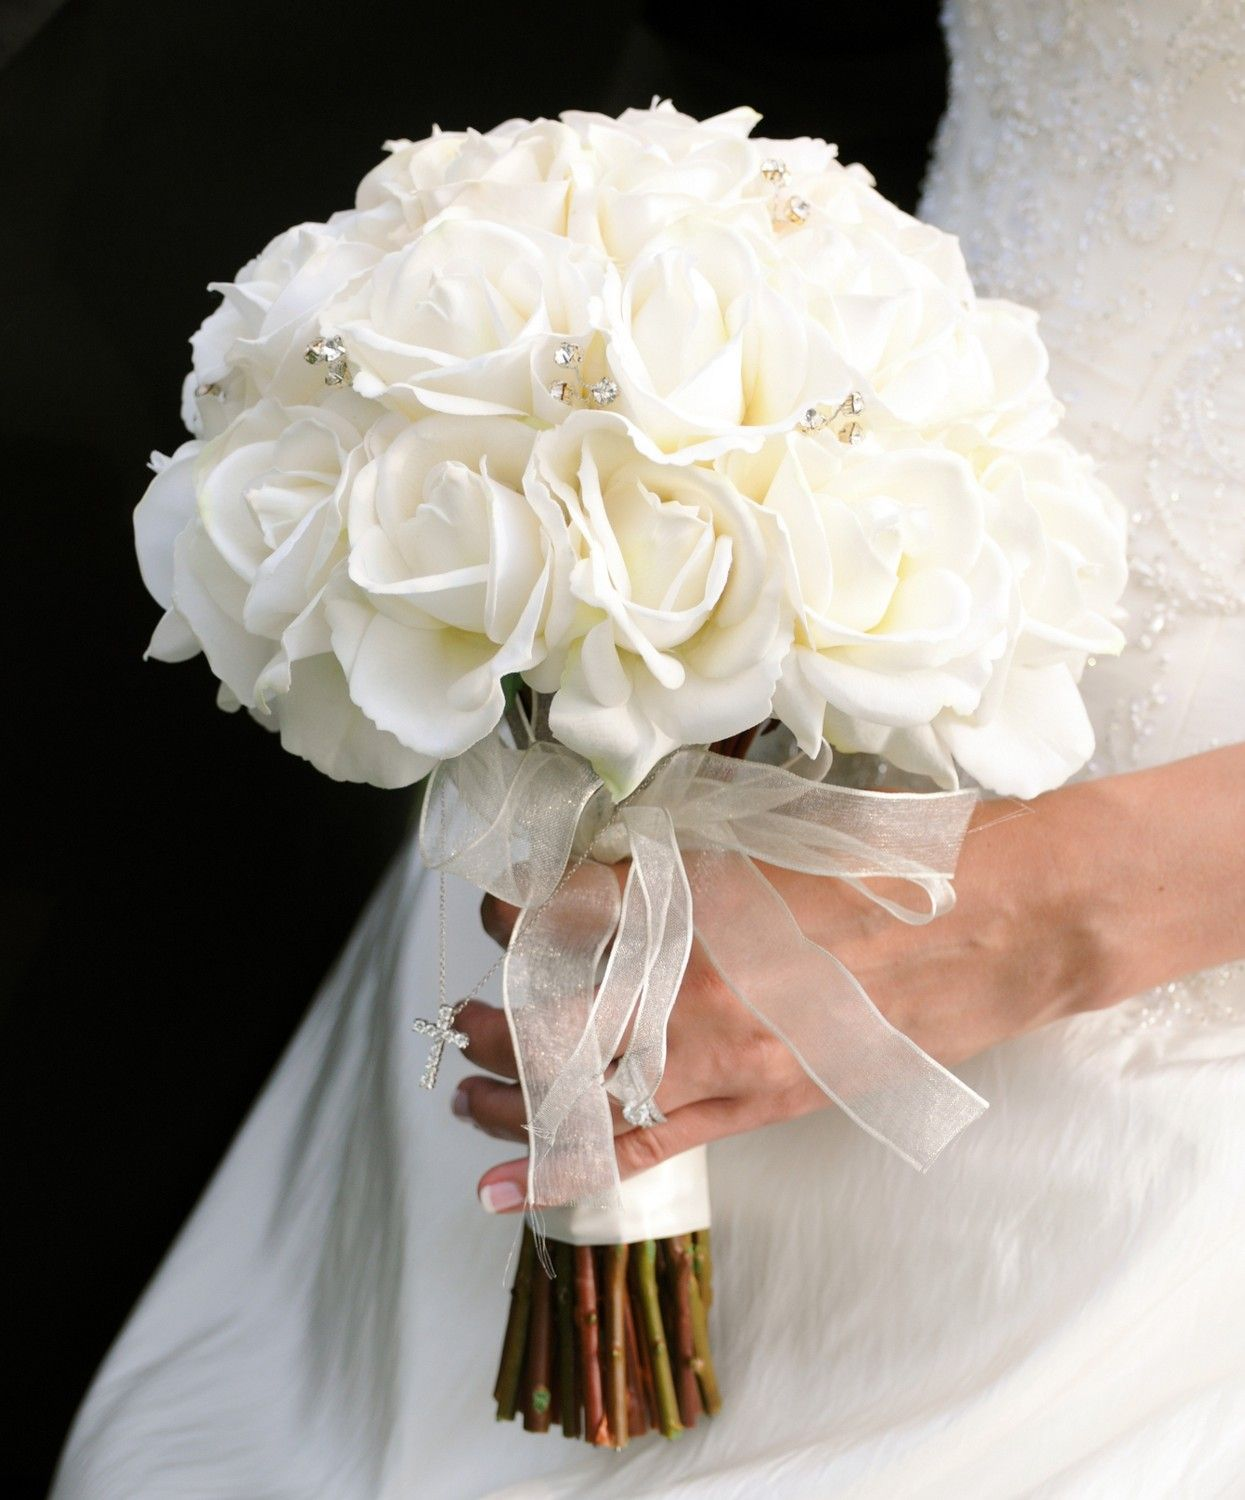 Bridal Bouquet White Roses Real Touch Silk Wedding Flowers Sparkly